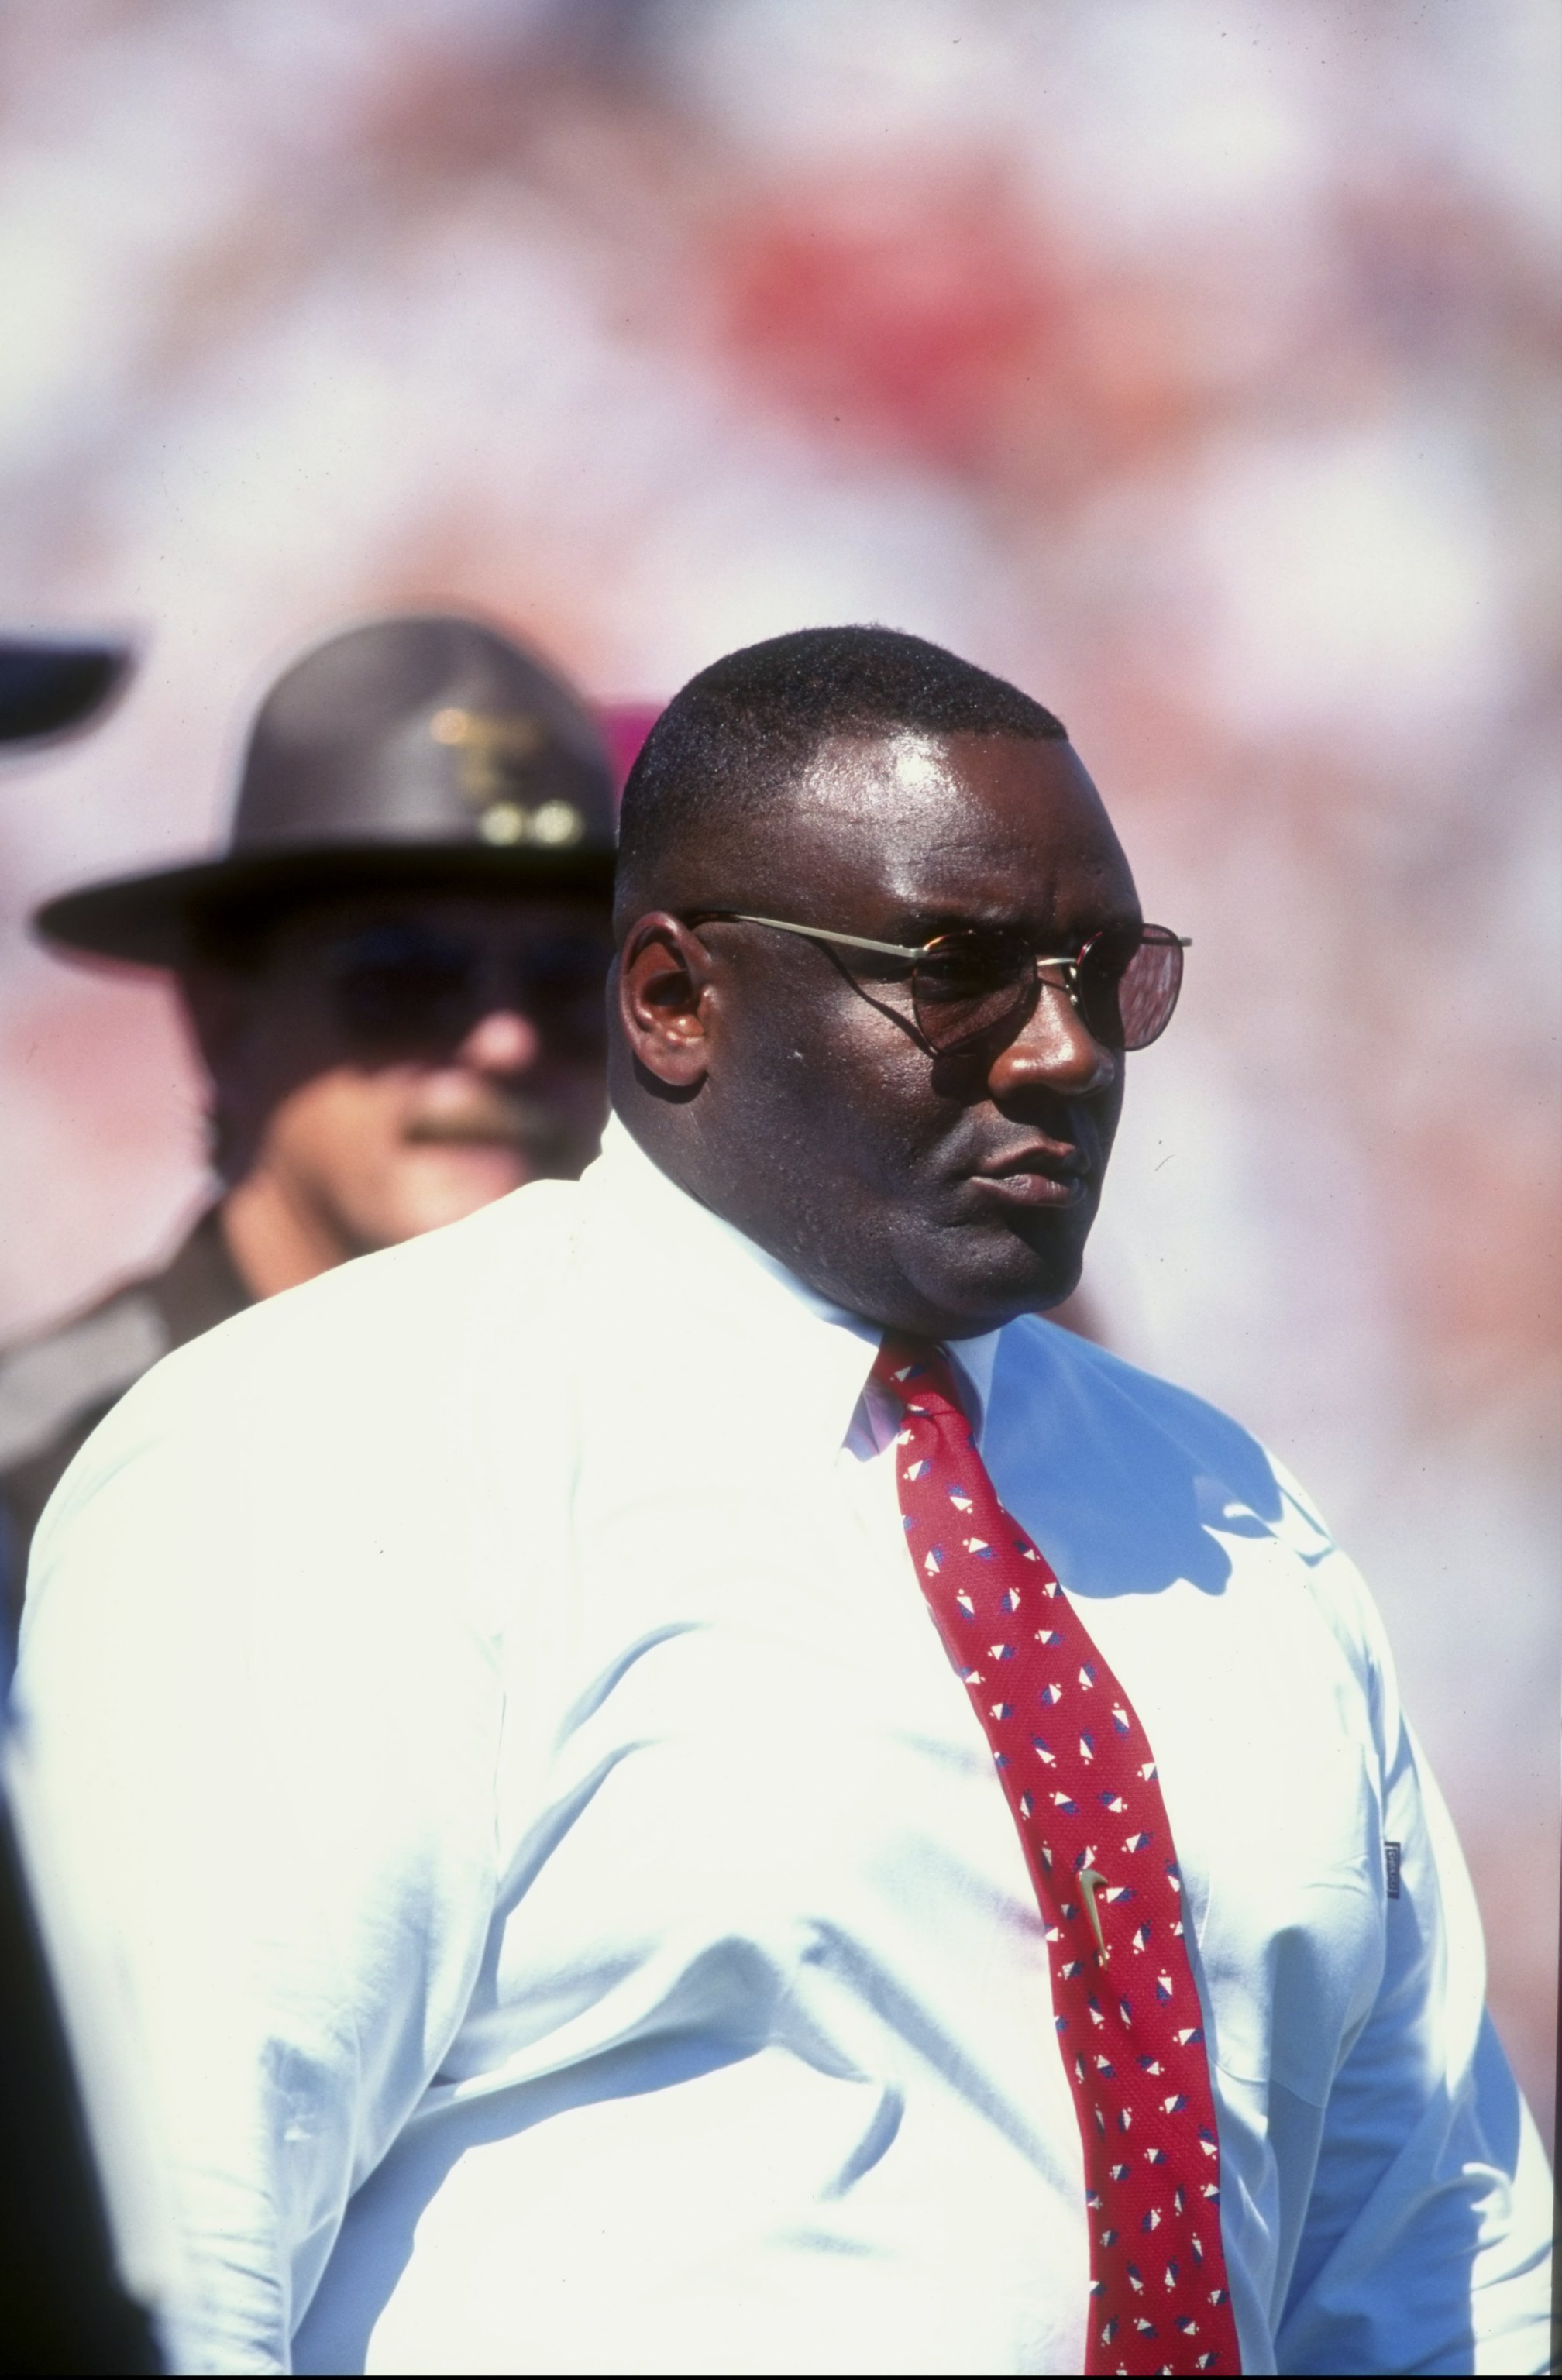 10 Oct 1998: Head coach John Blake of the Oklahoma Sooners looks on during the game against the Texas Longhorns at the Cotton Bowl in Dallas, Texas. The Longhorns defeated the Sooners 34-3.